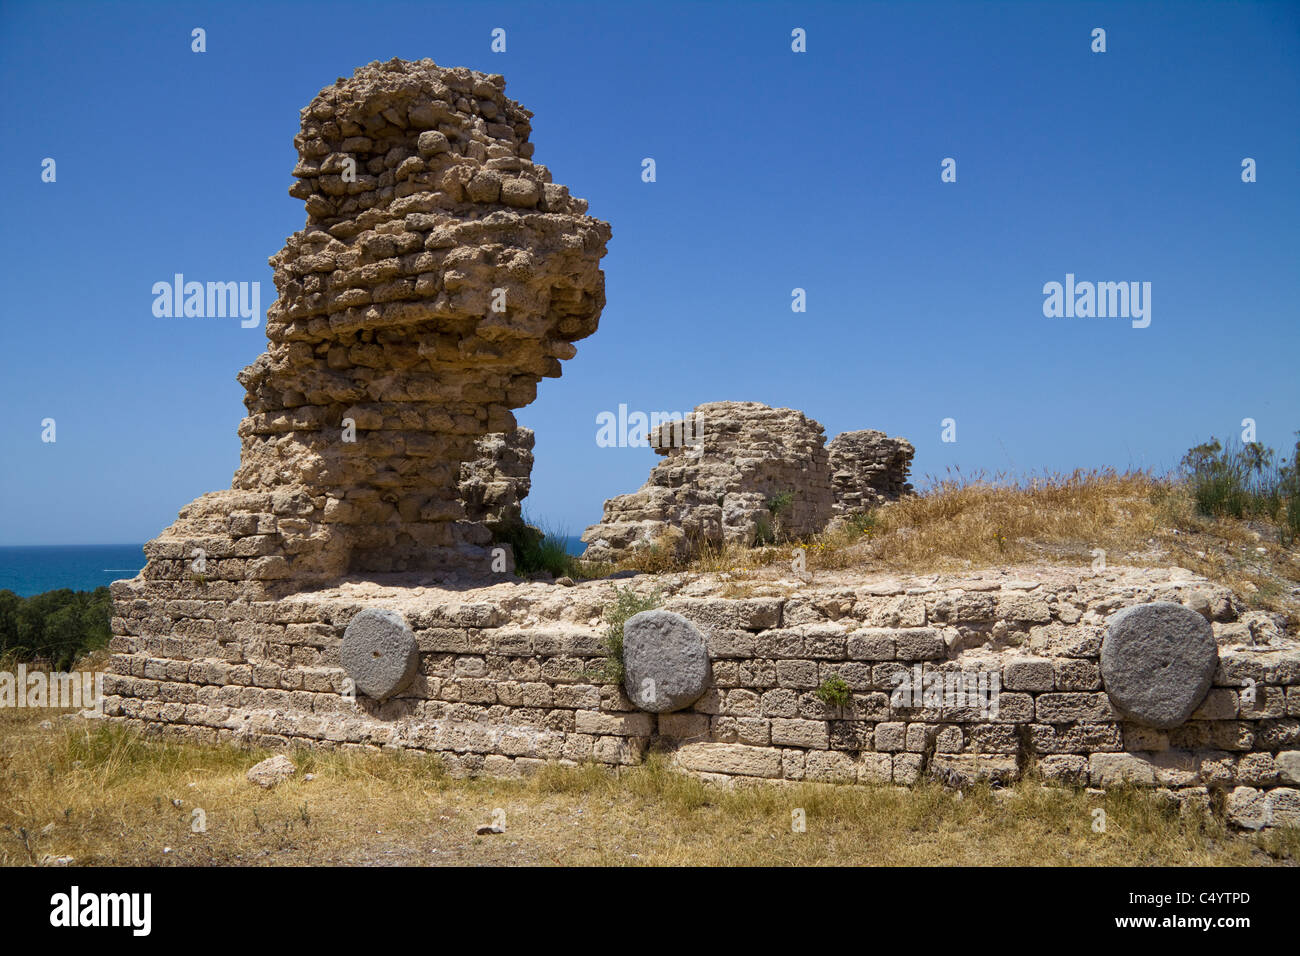 Canaanite fortifications Ashkelon National Park, Israel Stock Photo